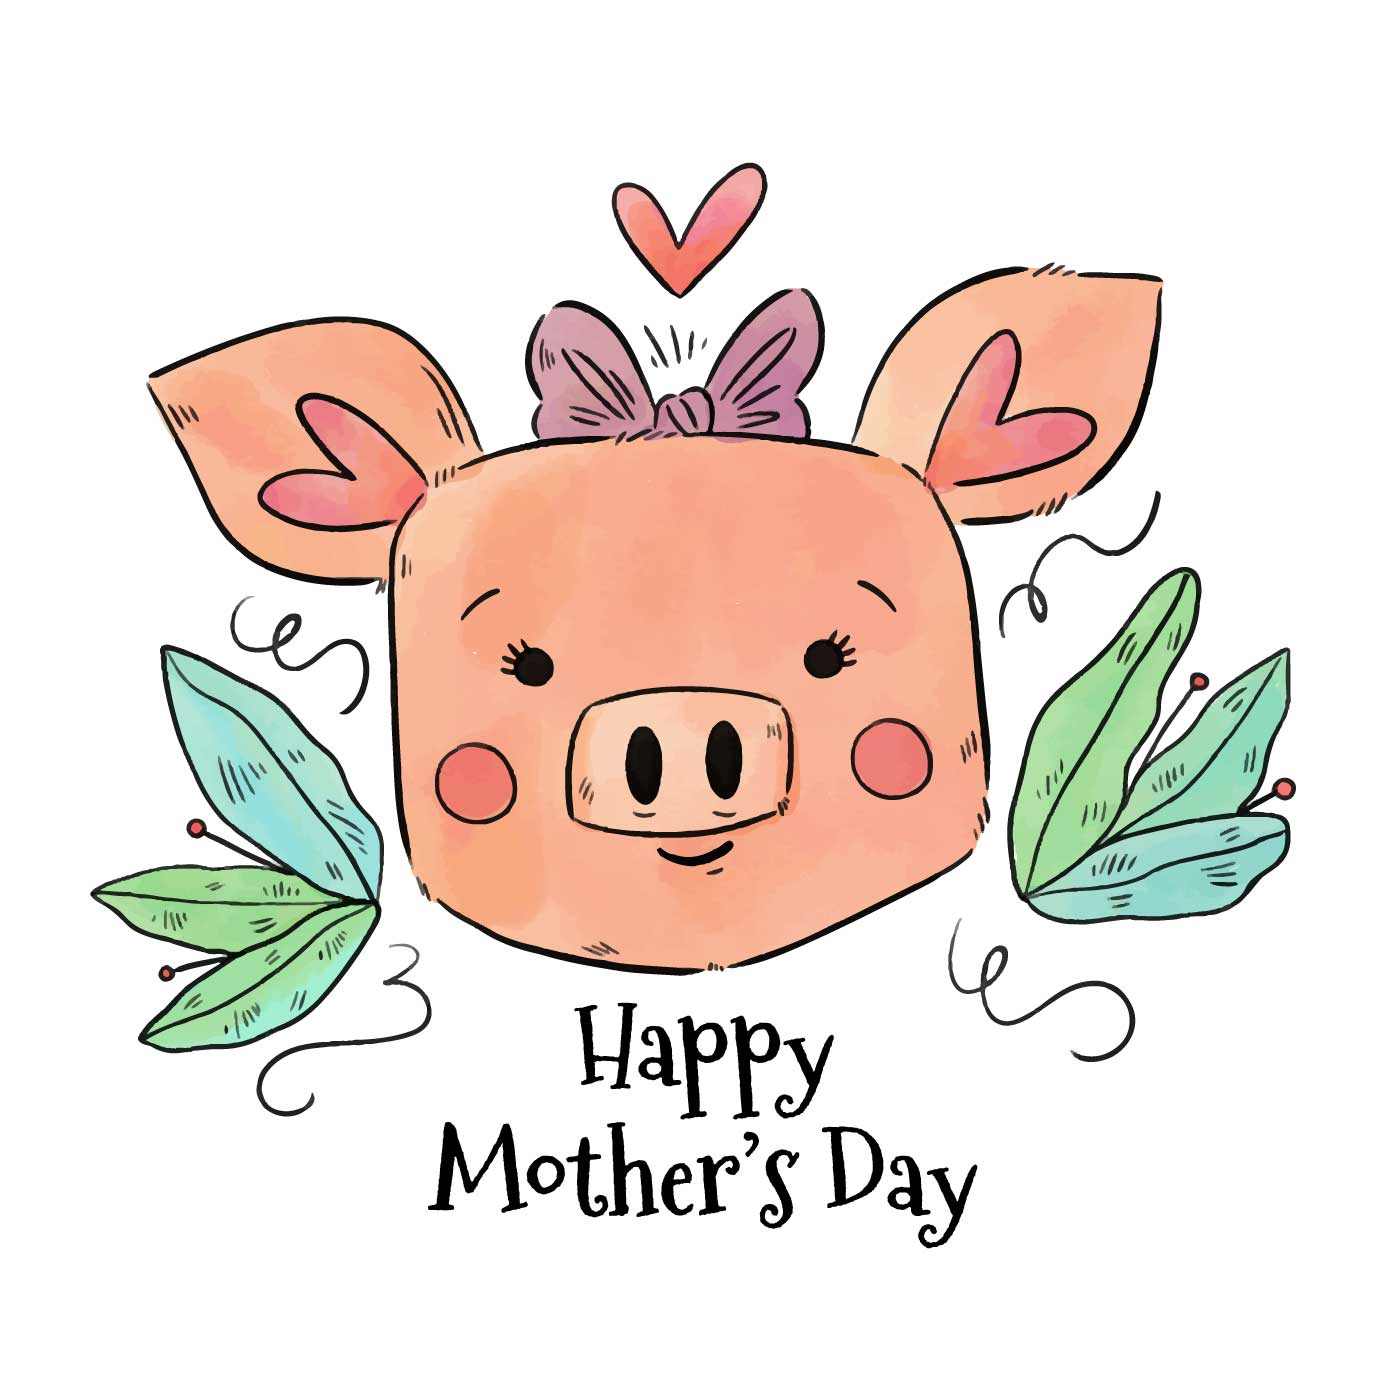 Cute Mom Pig To Mother's Day - Download Free Vector Art ...